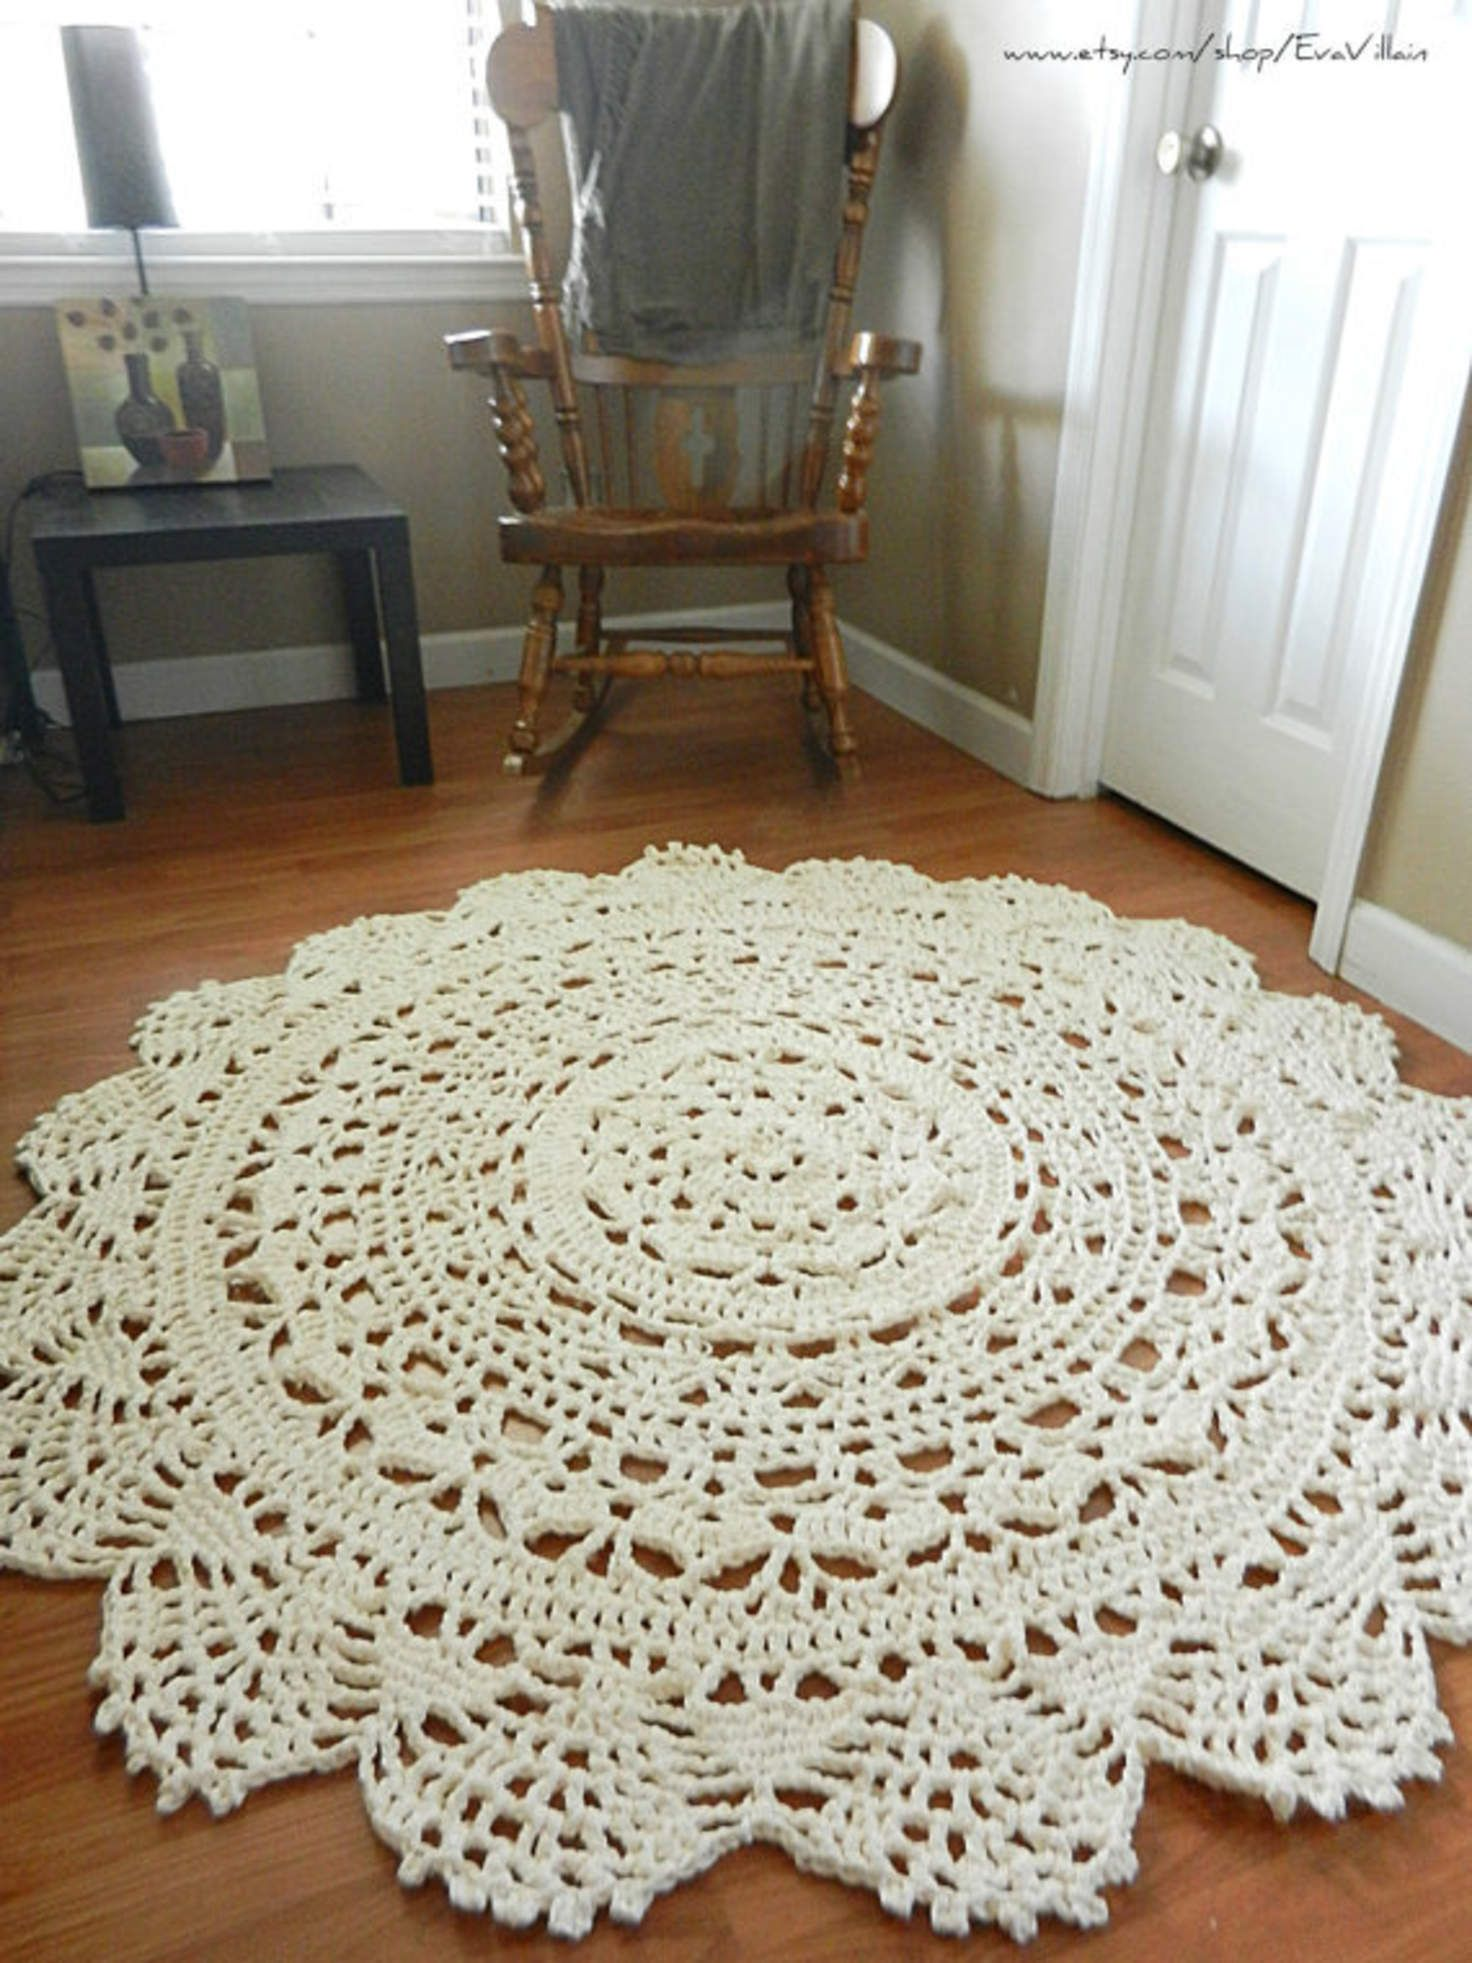 Giant Crochet Doily Rug Floor Off White Ecru Lace Large Area Cottage Chic Oversized Shabby Home